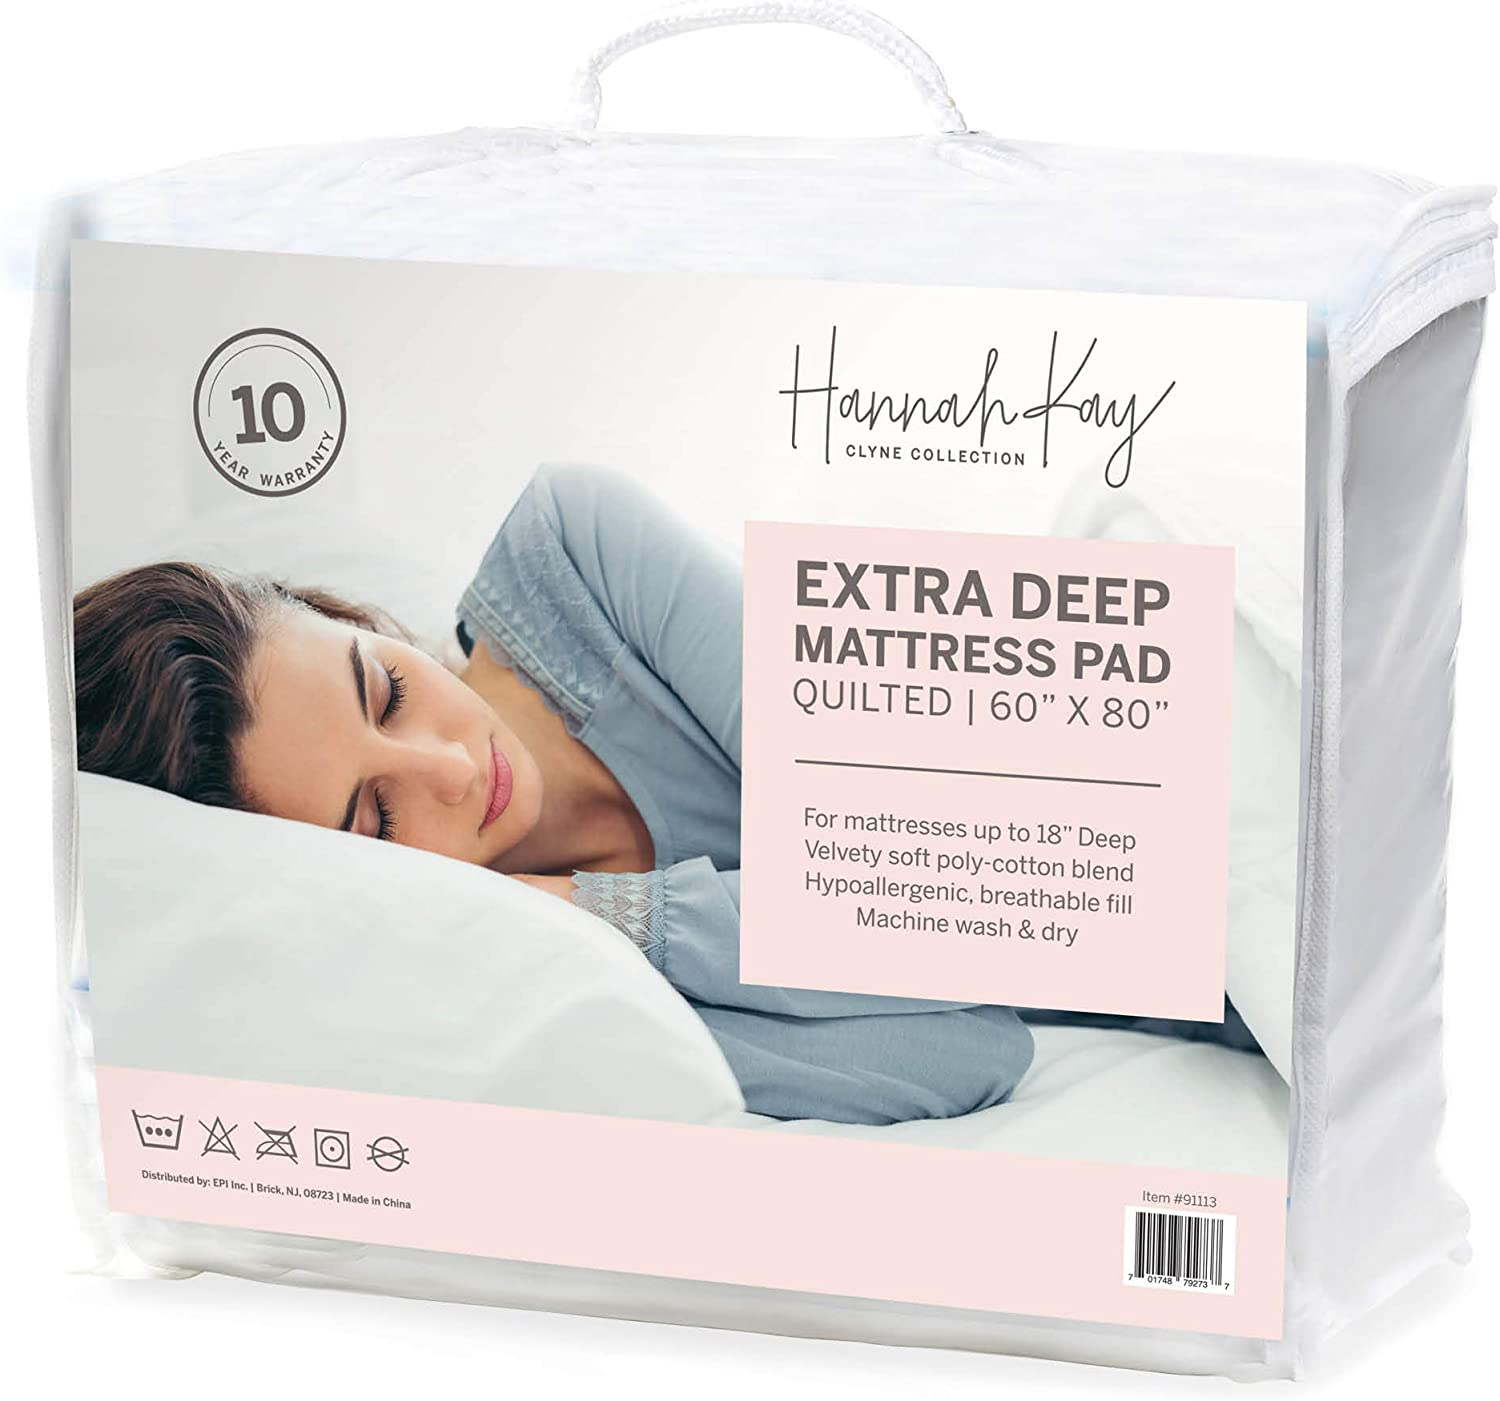 Hanna Kay Hypoallergenic Quilted Stretch-to-Fit Mattress Pad, 10 Year Warranty-Clyne Collection (Queen): Home & Kitchen